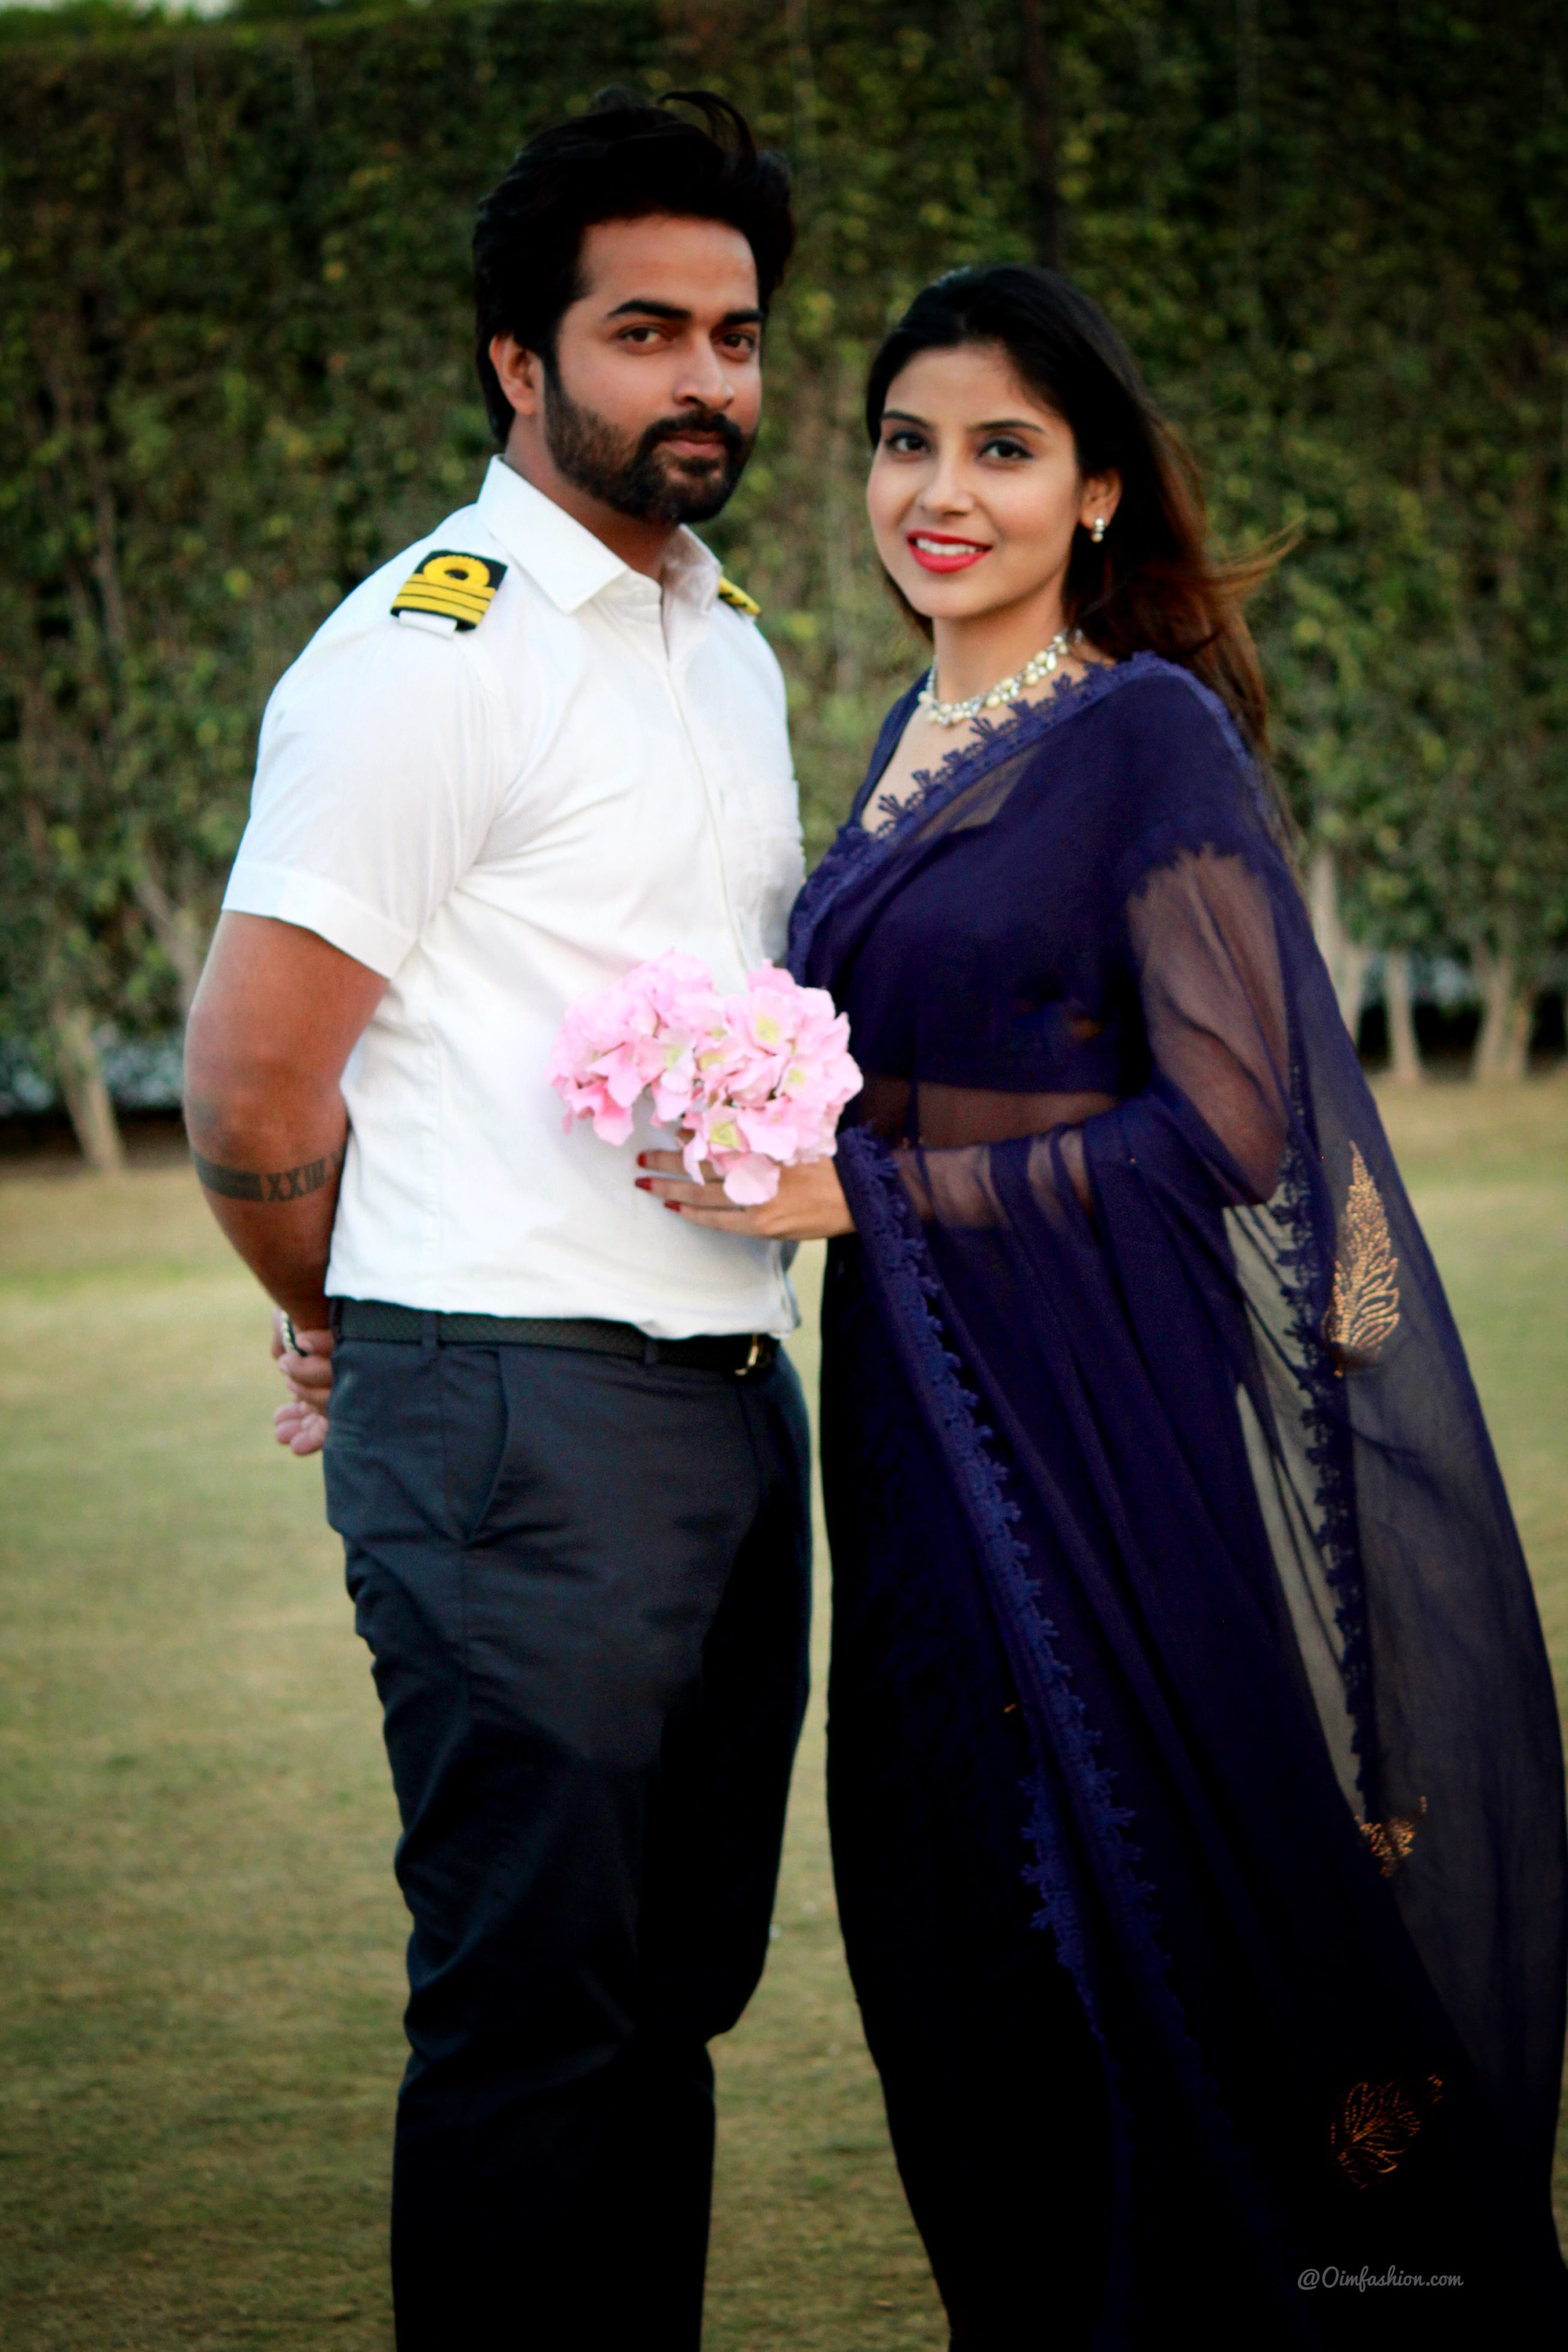 Prewedding Ideas, Sailors Wife, Sailor, Navy uniform, couple photoshoot, couple photo, royal photography, classy couples, What to wear in prewedding, Merchant Navy COuple